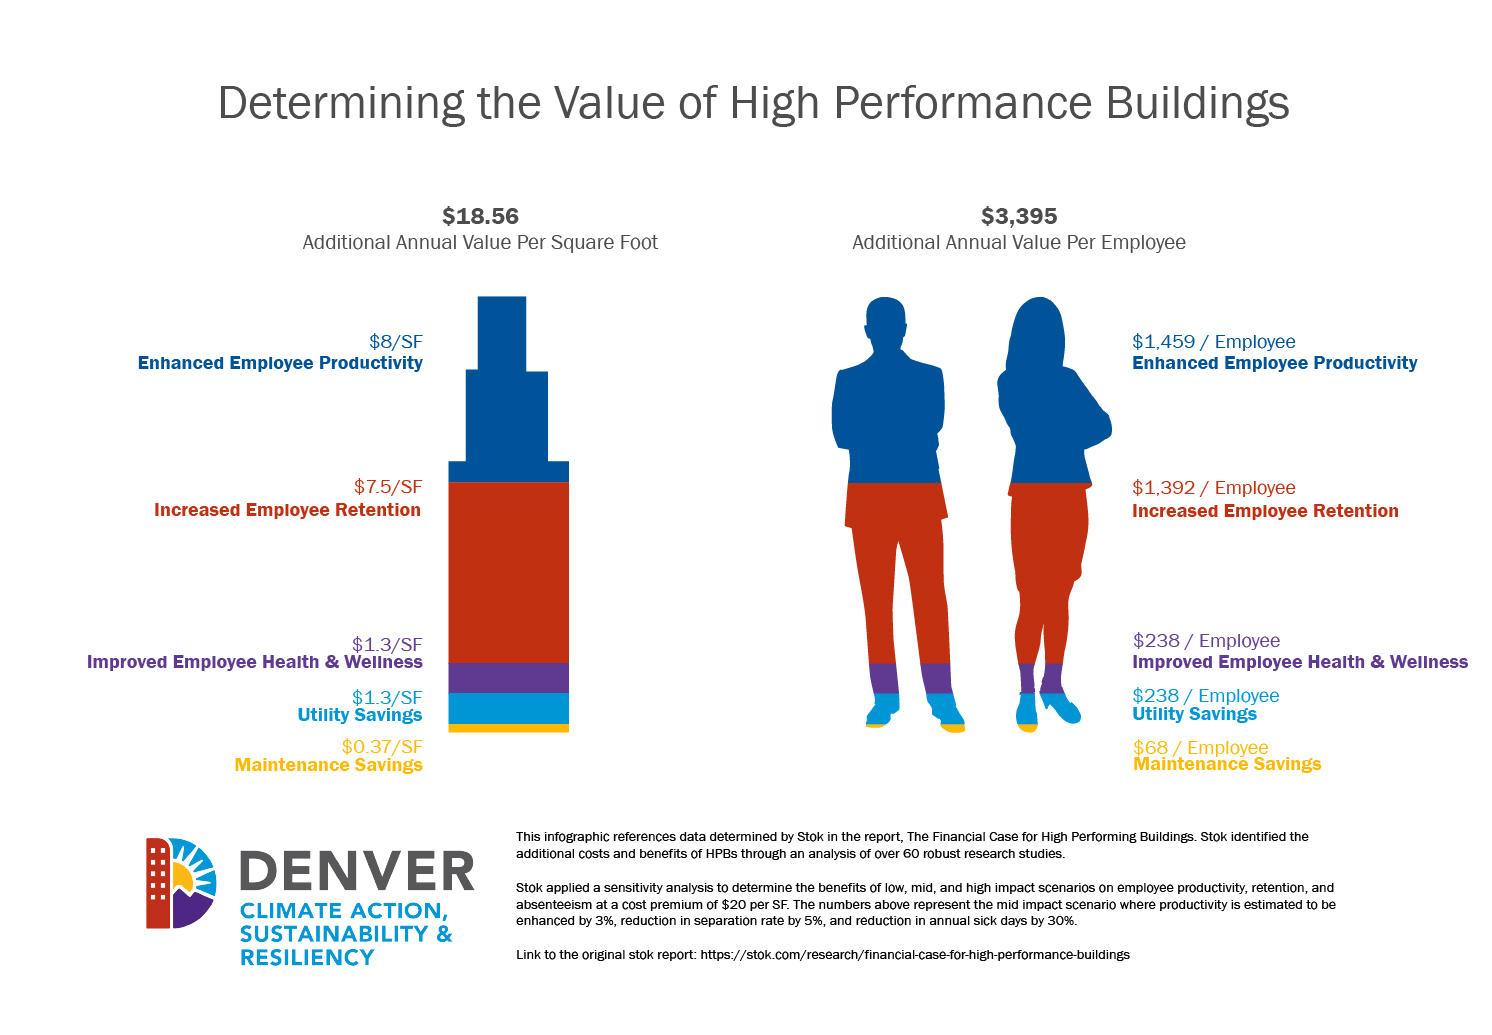 Determining the Value of High Performance Buildings